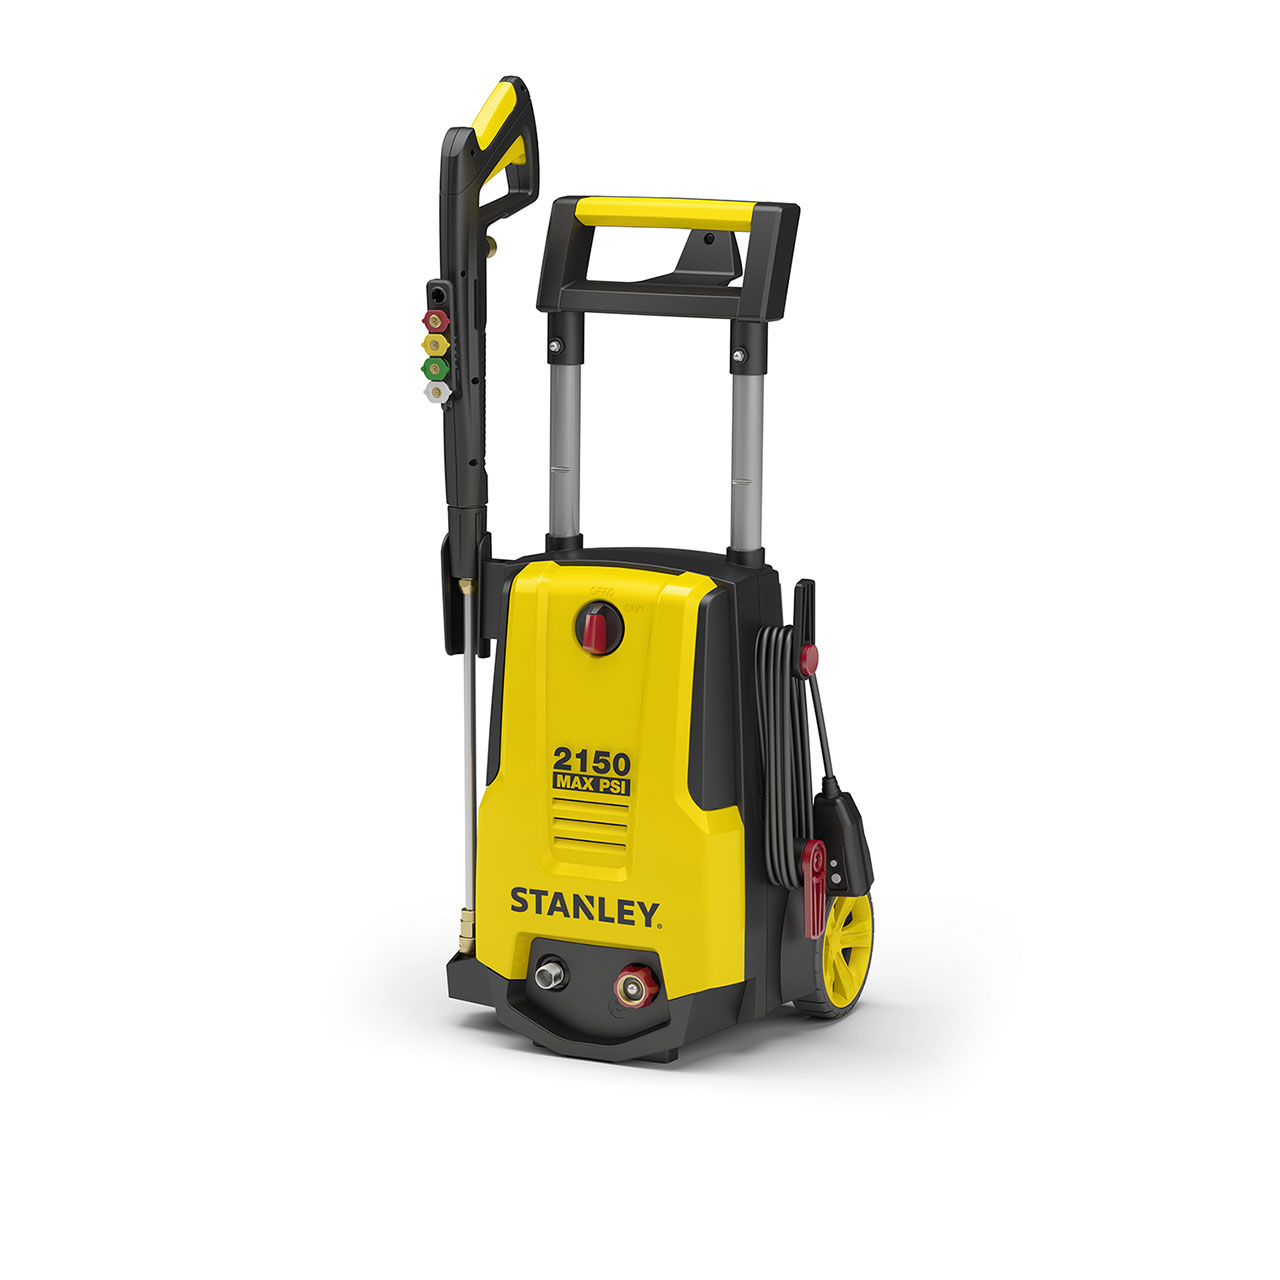 Stanley SHP 2150 PSI Electric Pressure Washer with Spray Gun, Wand, Hose, Nozzles & High Pressure Foam Cannon, Yellow